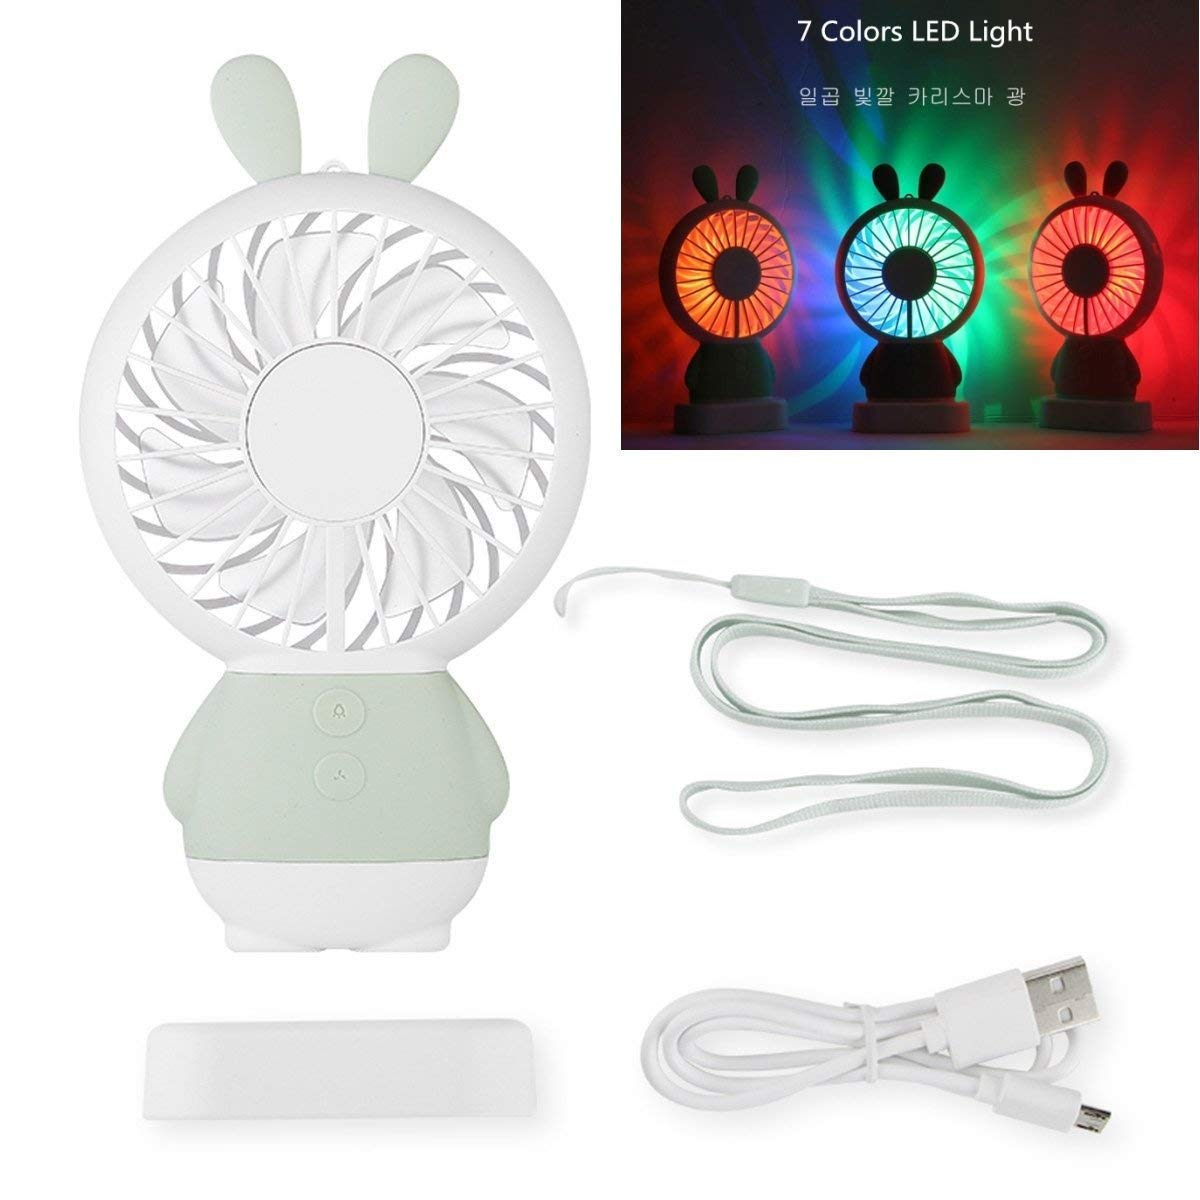 Cute Portable Handheld Fan,Starfly Personal Fan for Travel Home Office USB Rechargeable Battery Mini Fan 7 Colorful LED Light 2 Switch 2 Speeds Adjustable (Green Rabbit)